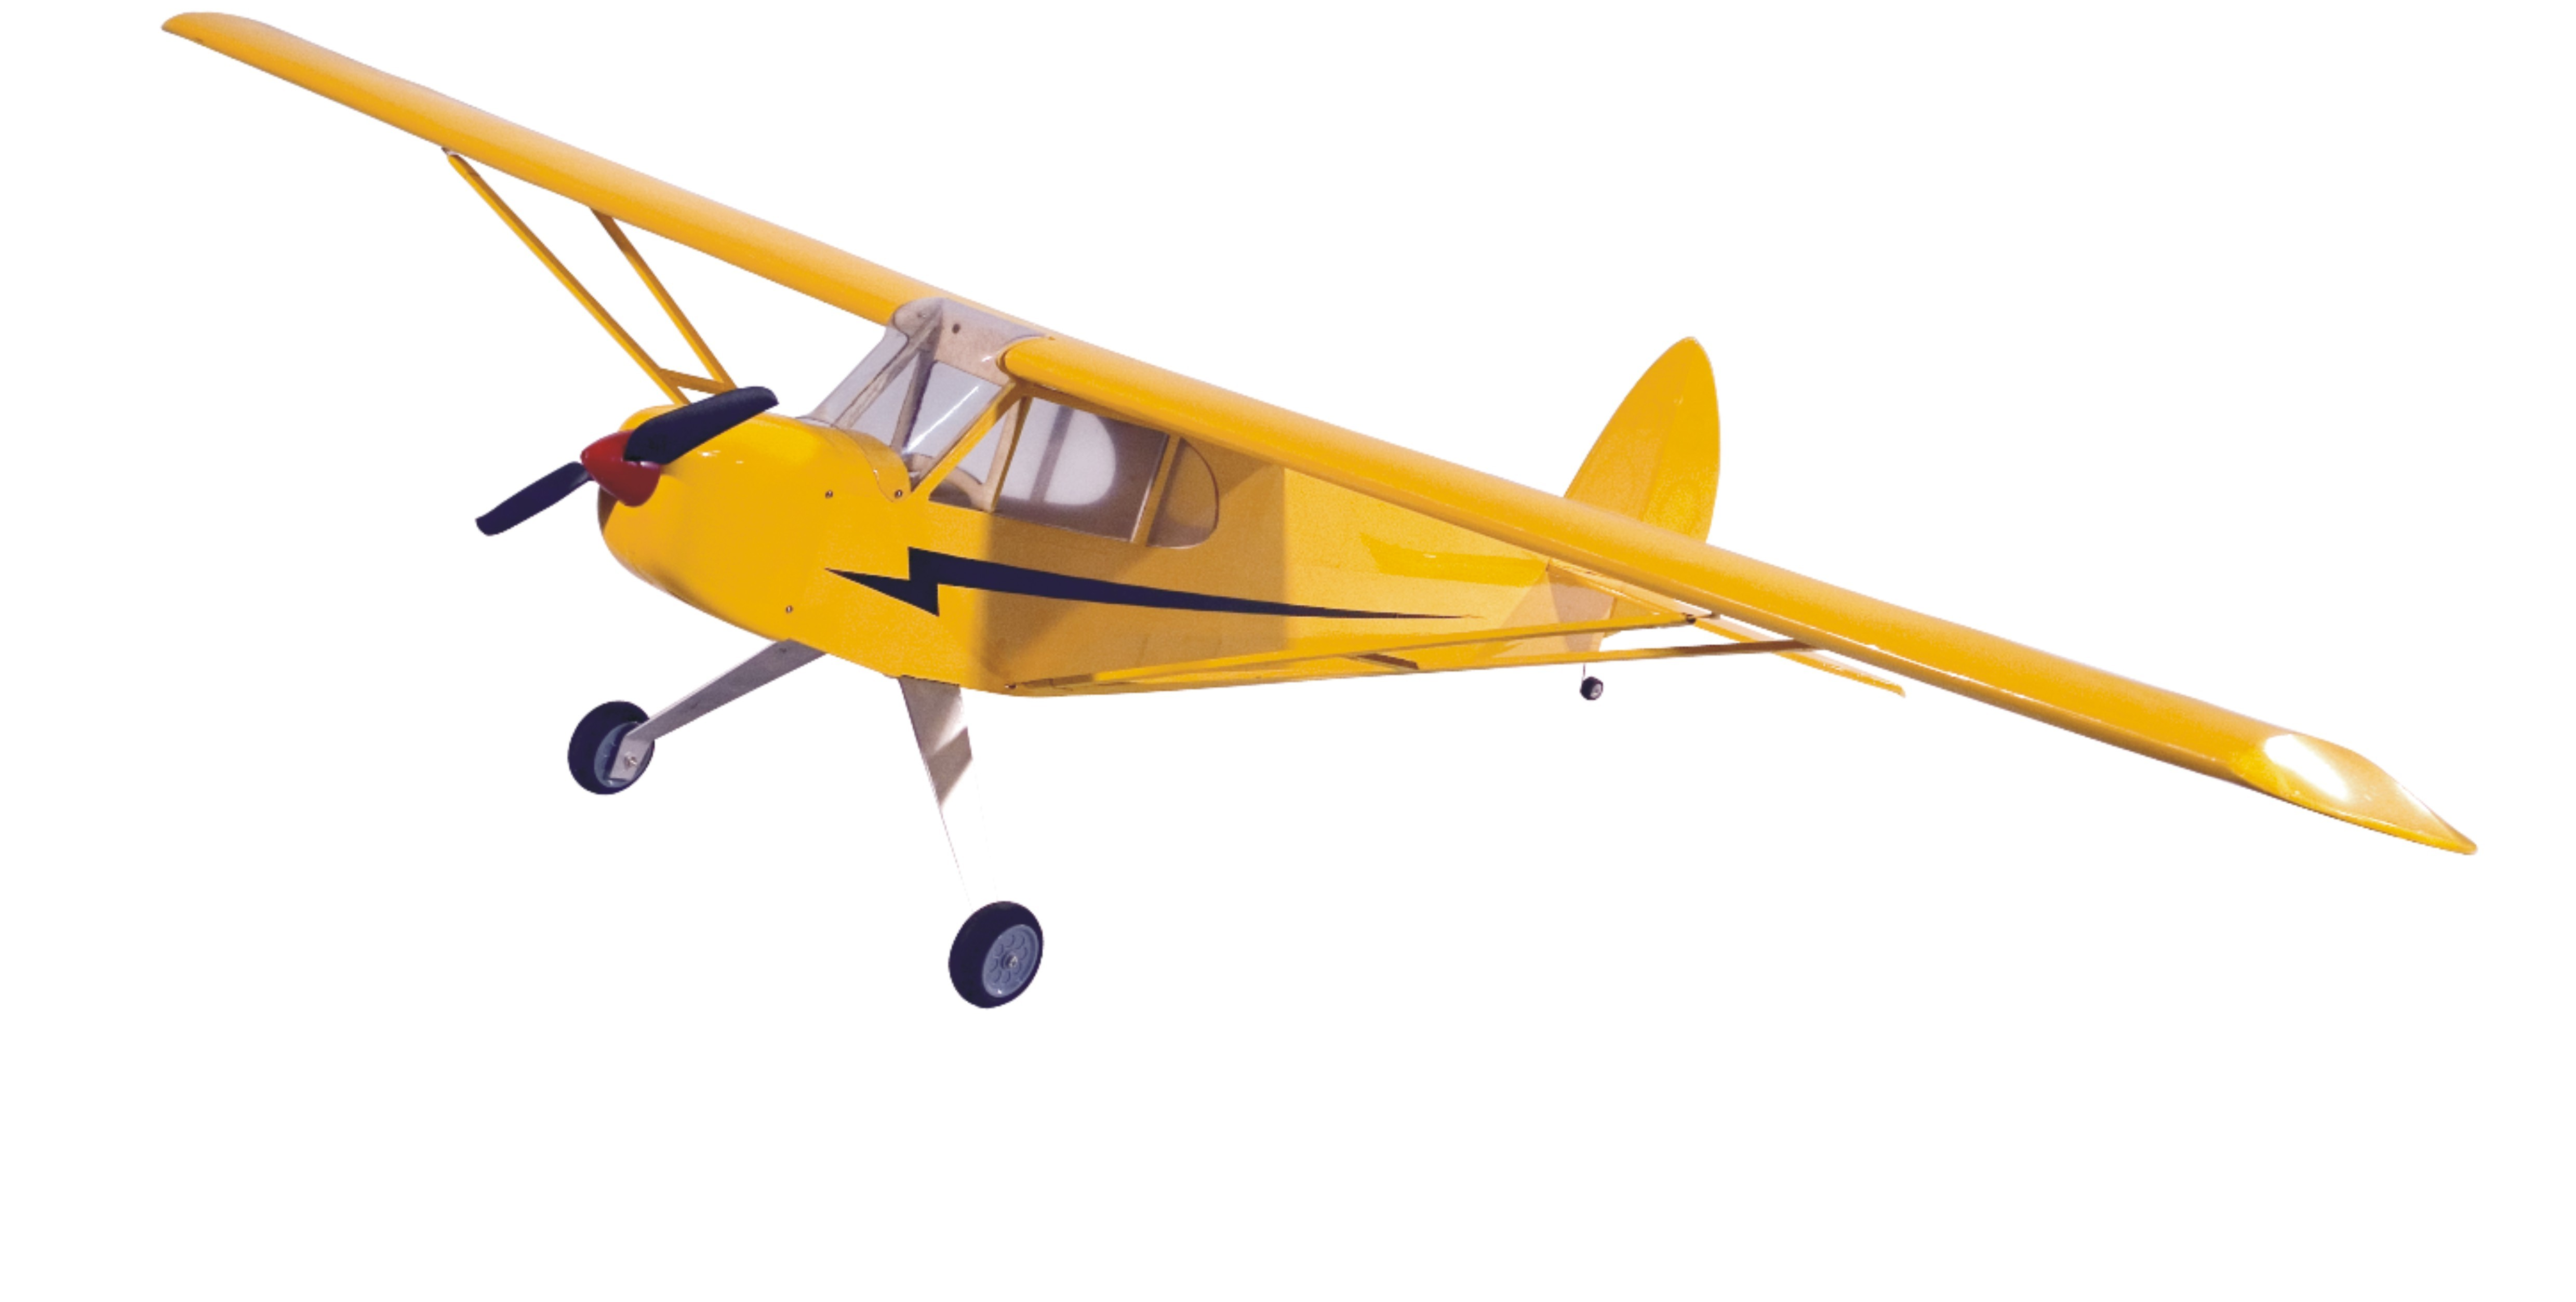 J3 1190mm Wingspan Balsa Wood Electric Scale RC Airplane Glider KIT - Photo: 1